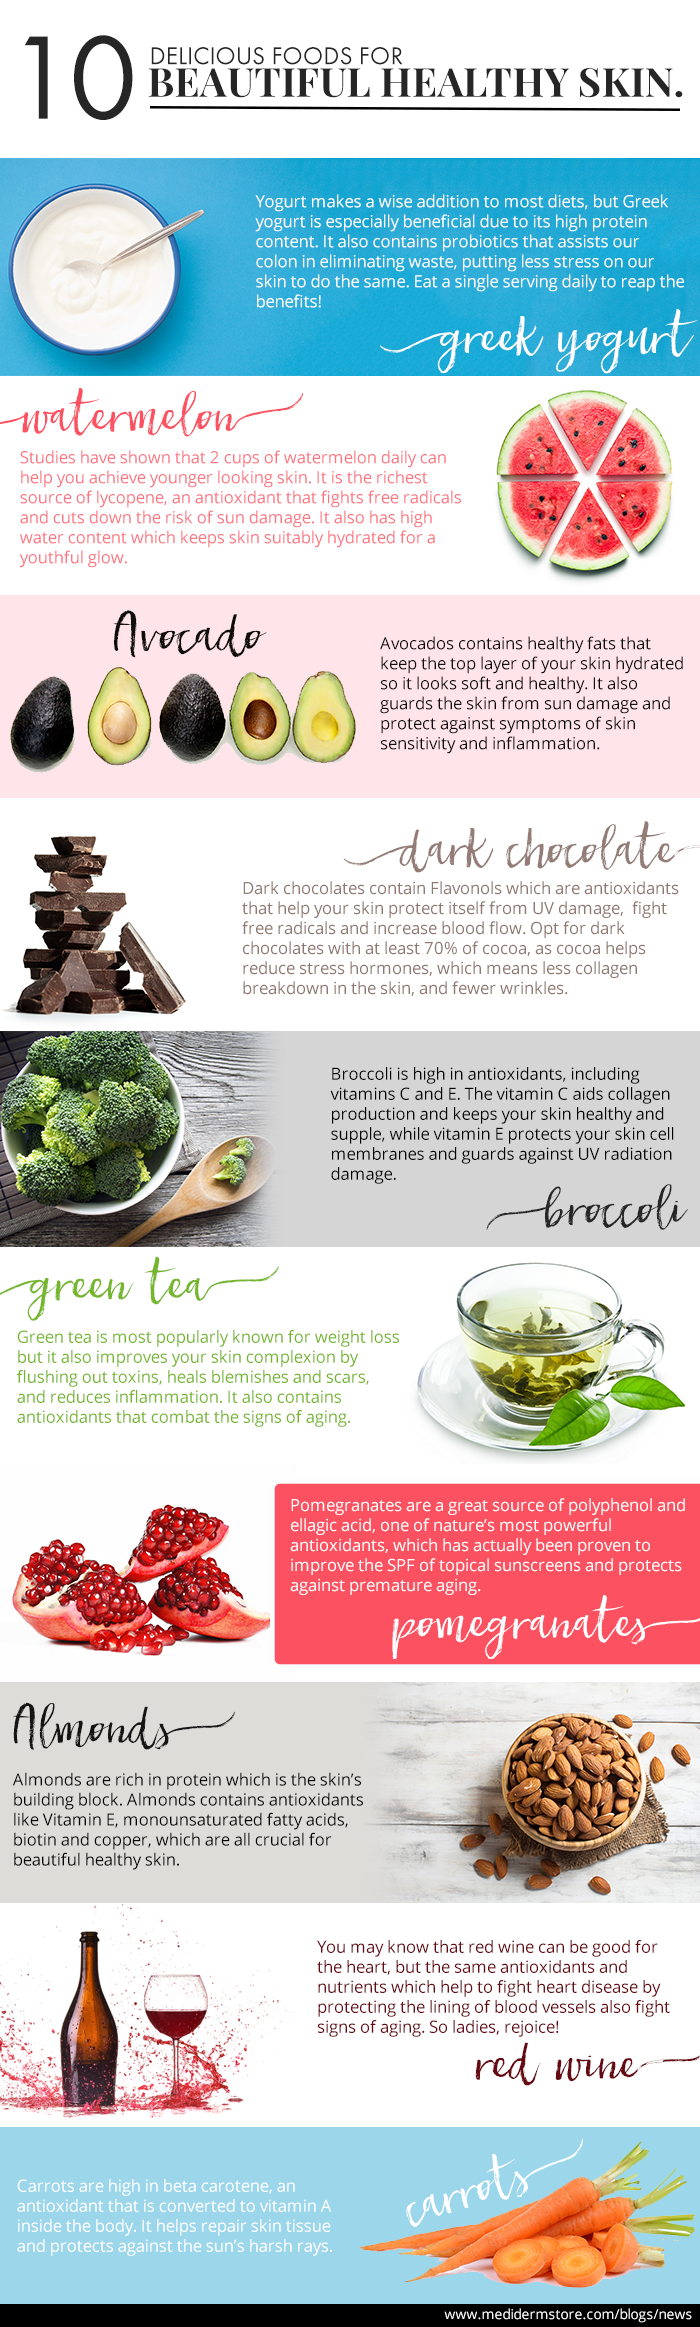 10 Delicious Foods for Beautiful Healthy Skin – Mediderm